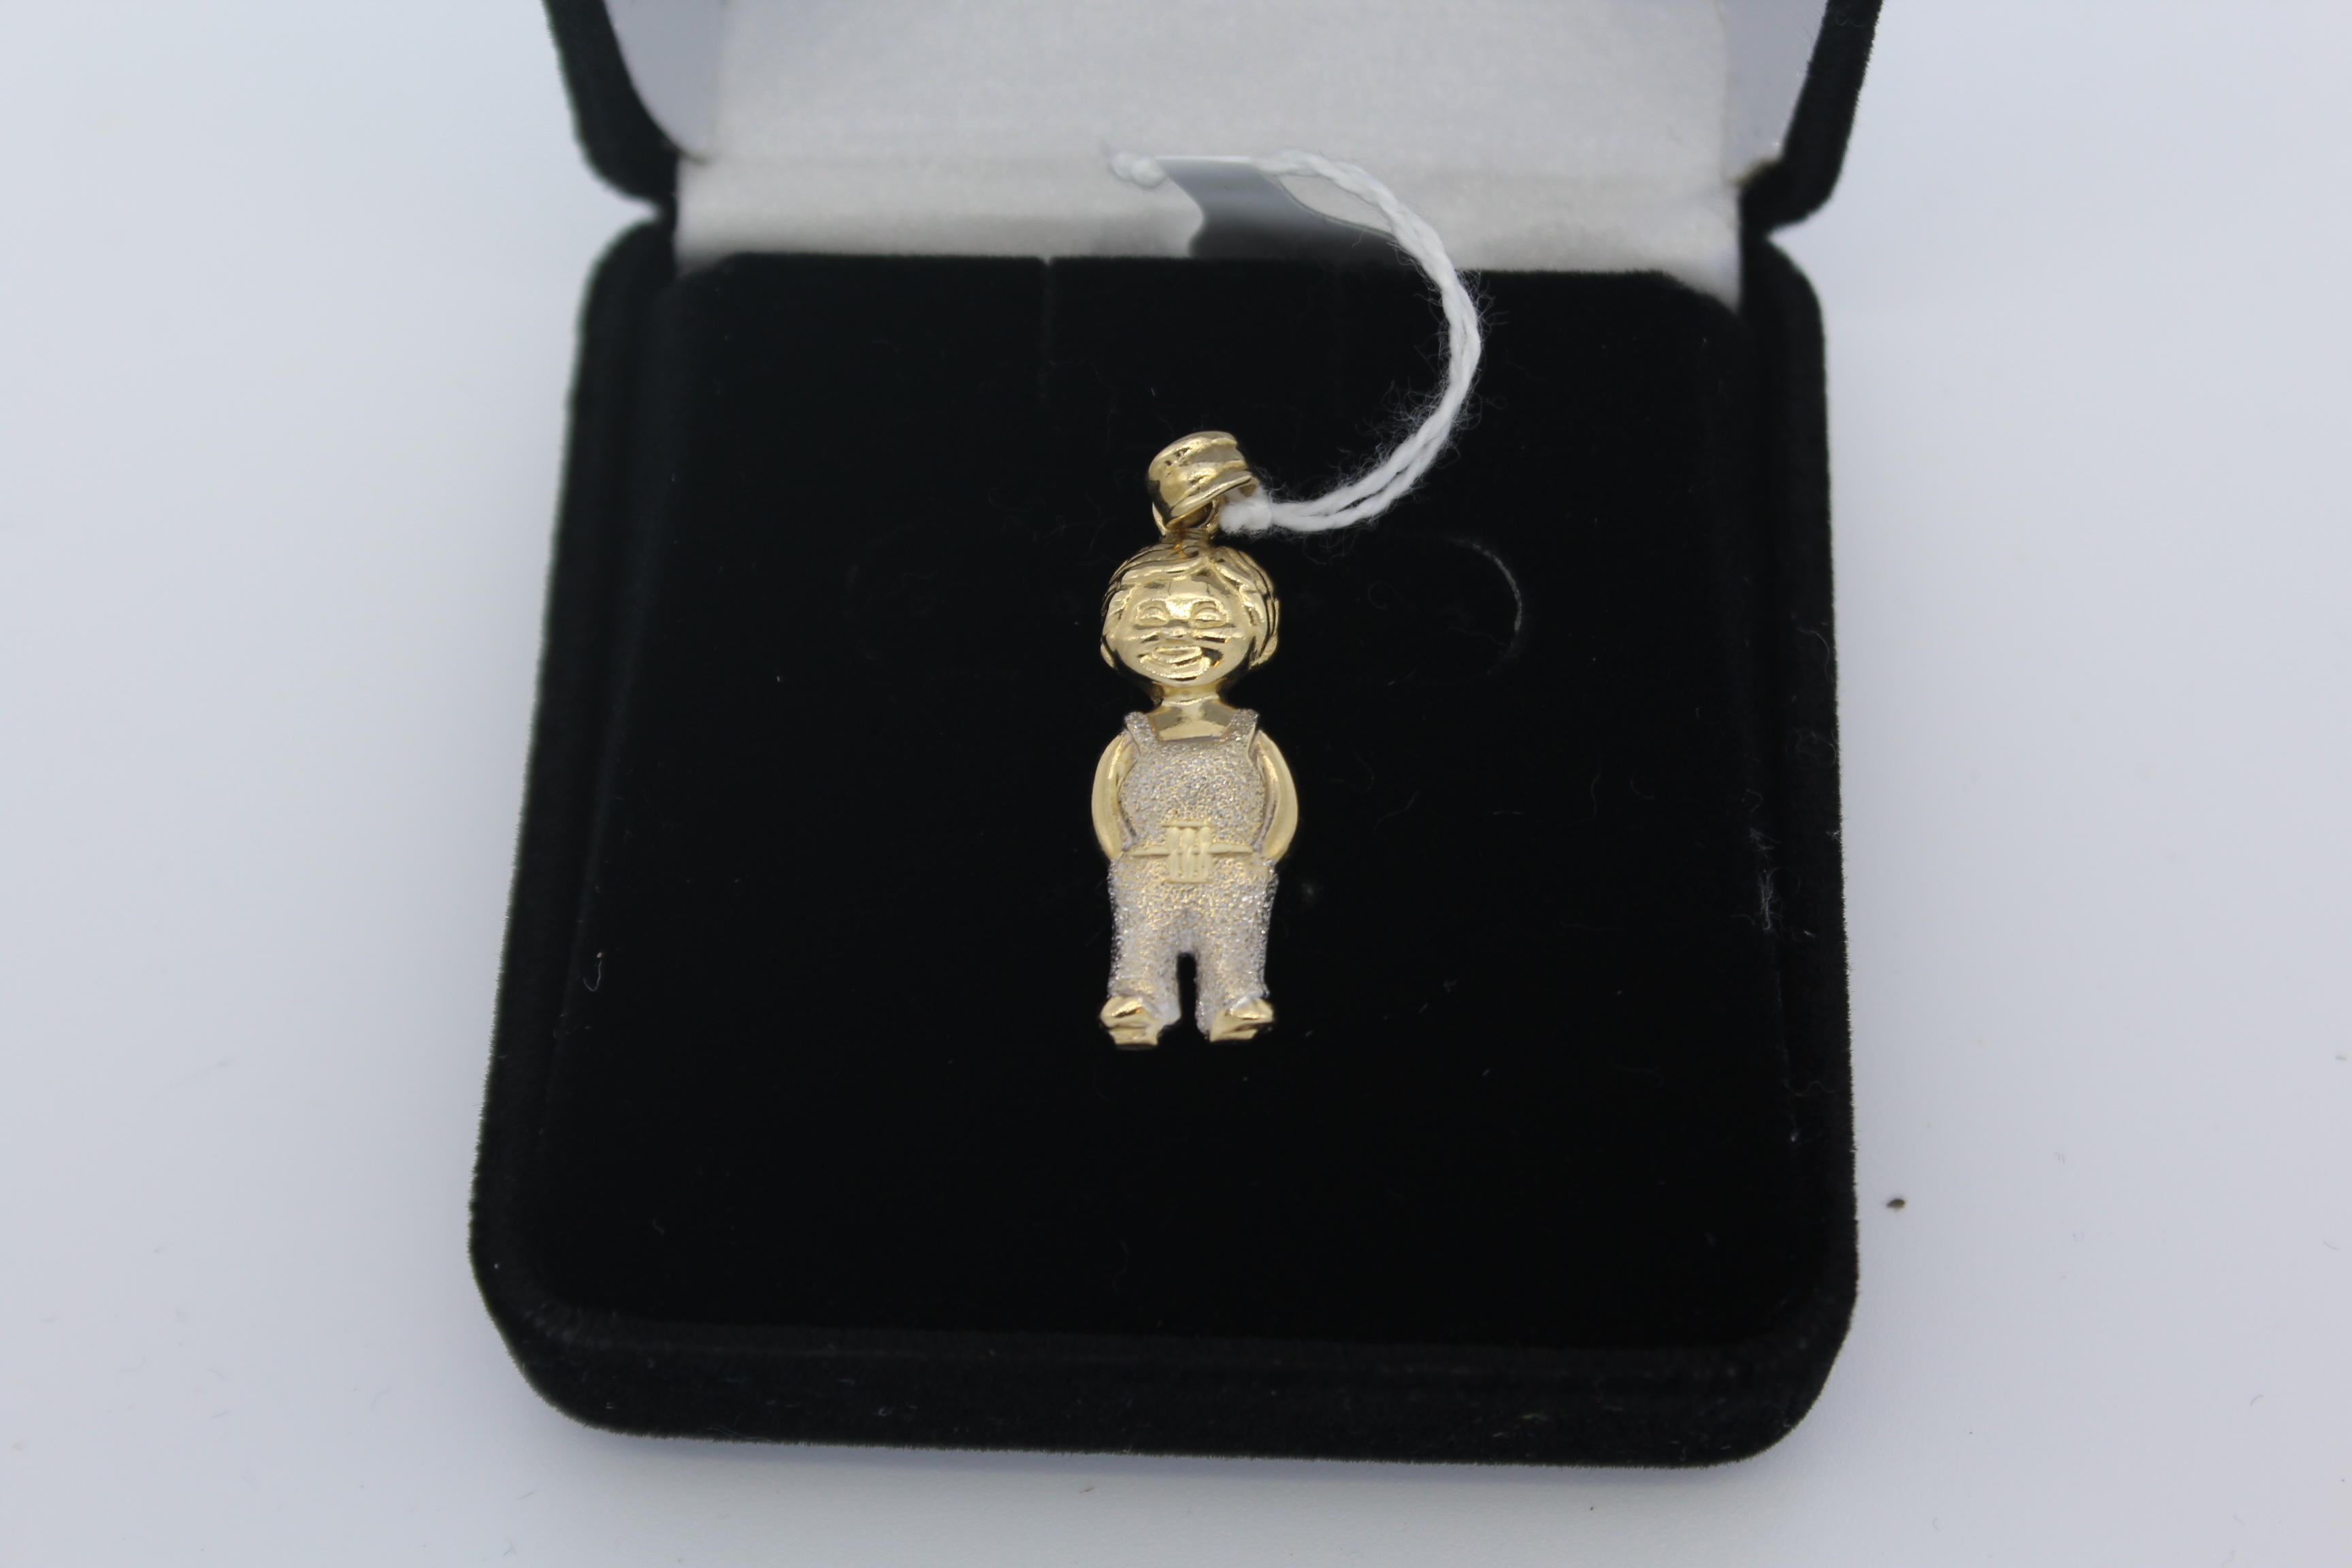 14K Yellow Gold Figure of a Boy Pendant